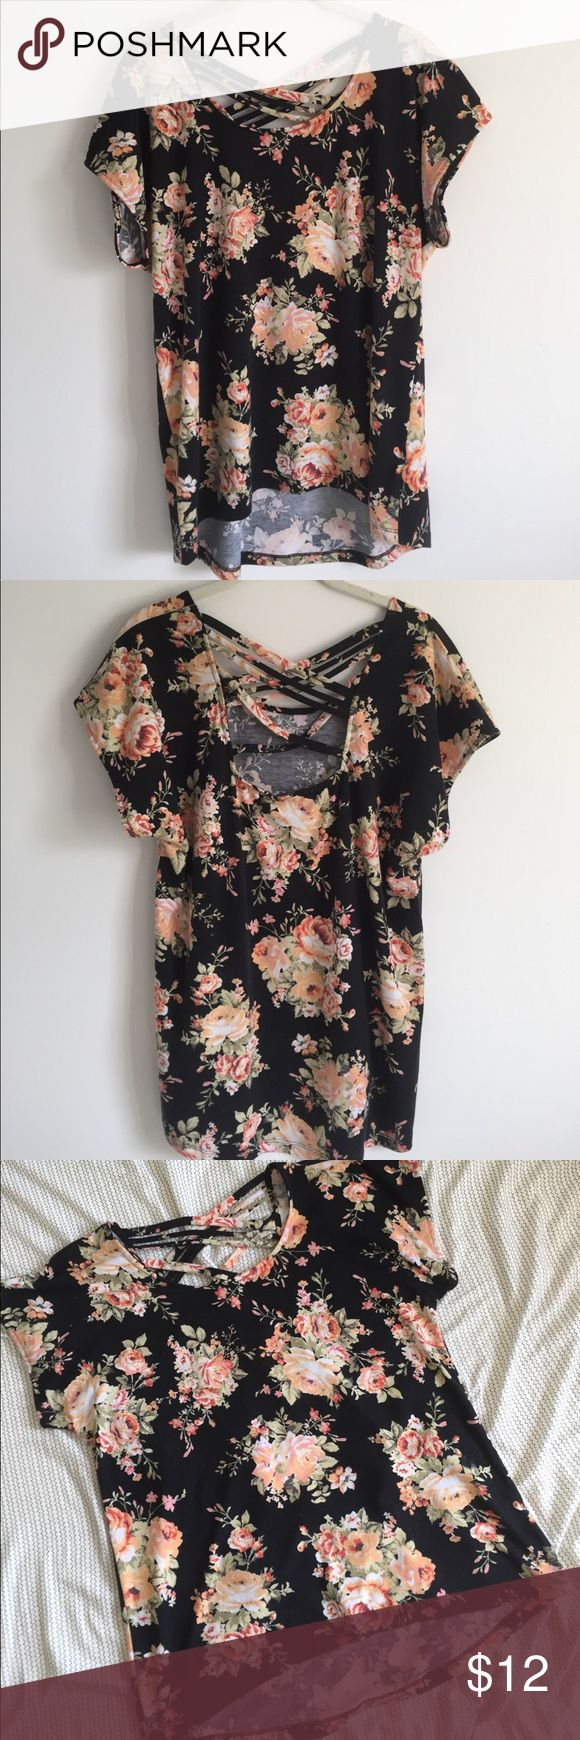 BOBEAU floral strappy top BOBEAU floral strappy high low top! Super cute :) great condition, but has been worn. 95% polyester, 5% spandex. Size M. Bust: 17in Length:  26in 🌻OFFERS WELCOME🌻 bobeau Tops Tees - Short Sleeve